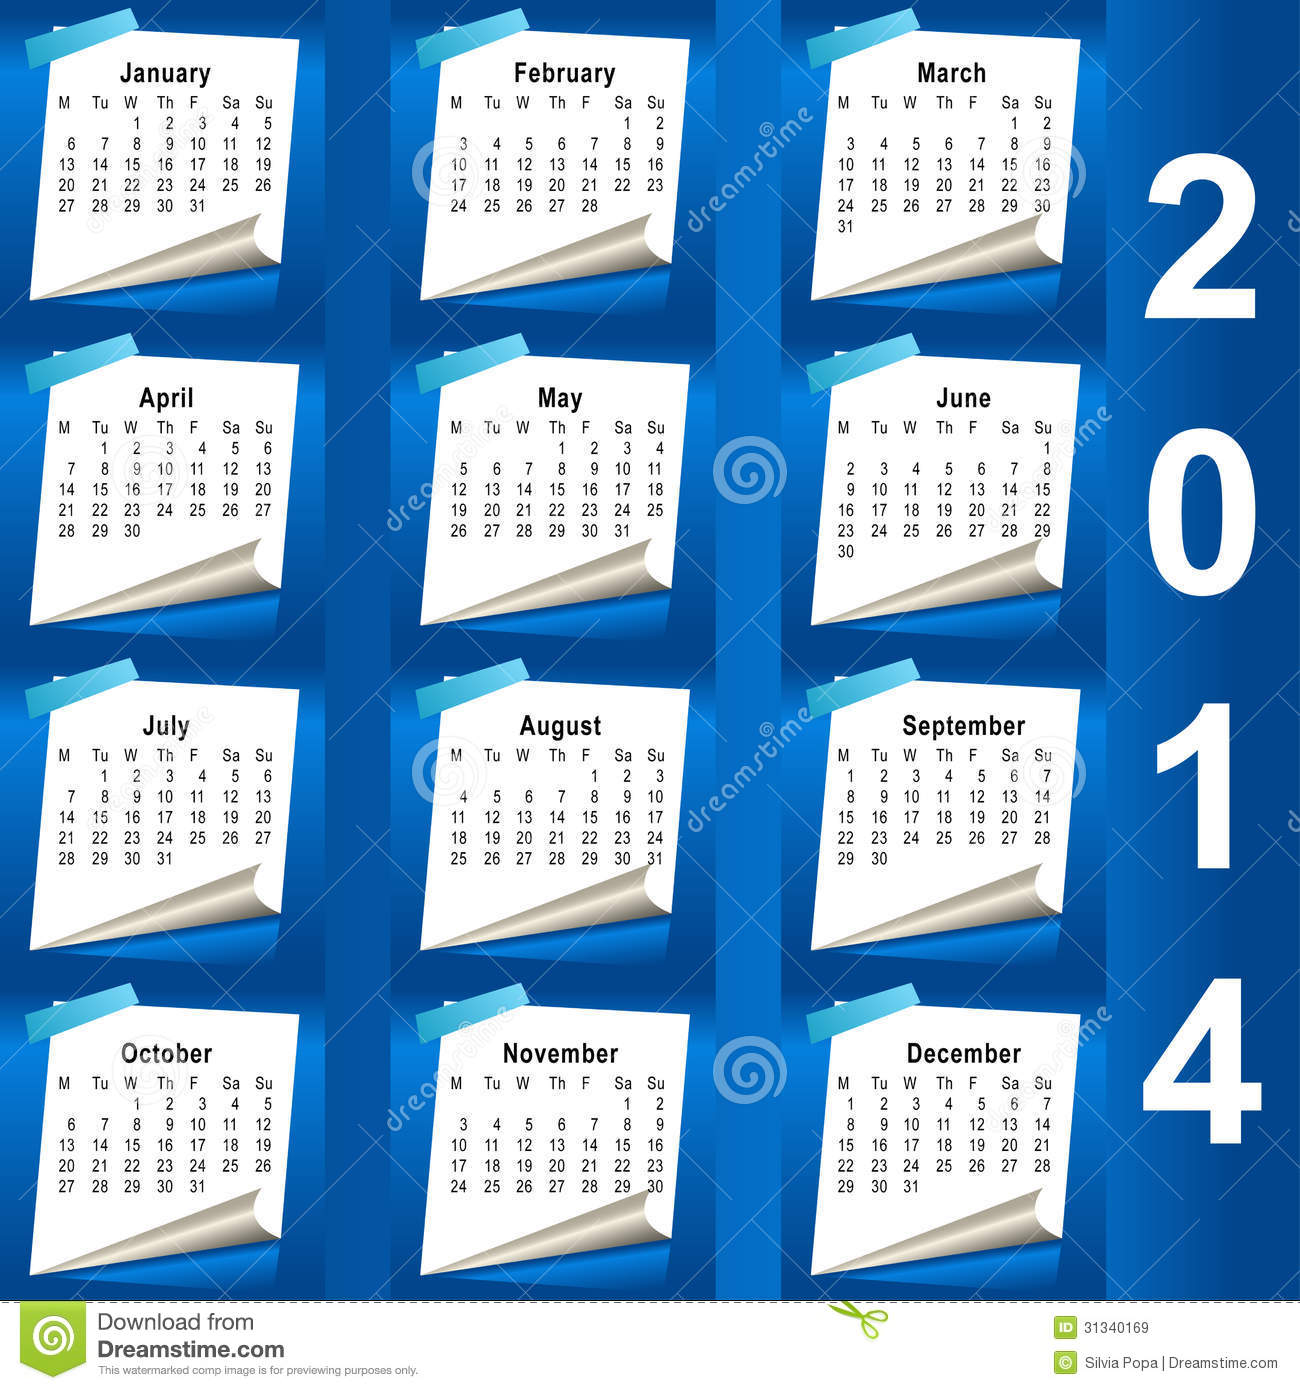 Month Calendar Vector Get Week Of Month And Year Using Java Calendar Java 2014 Calendar Design Week Starts With Monday Stock